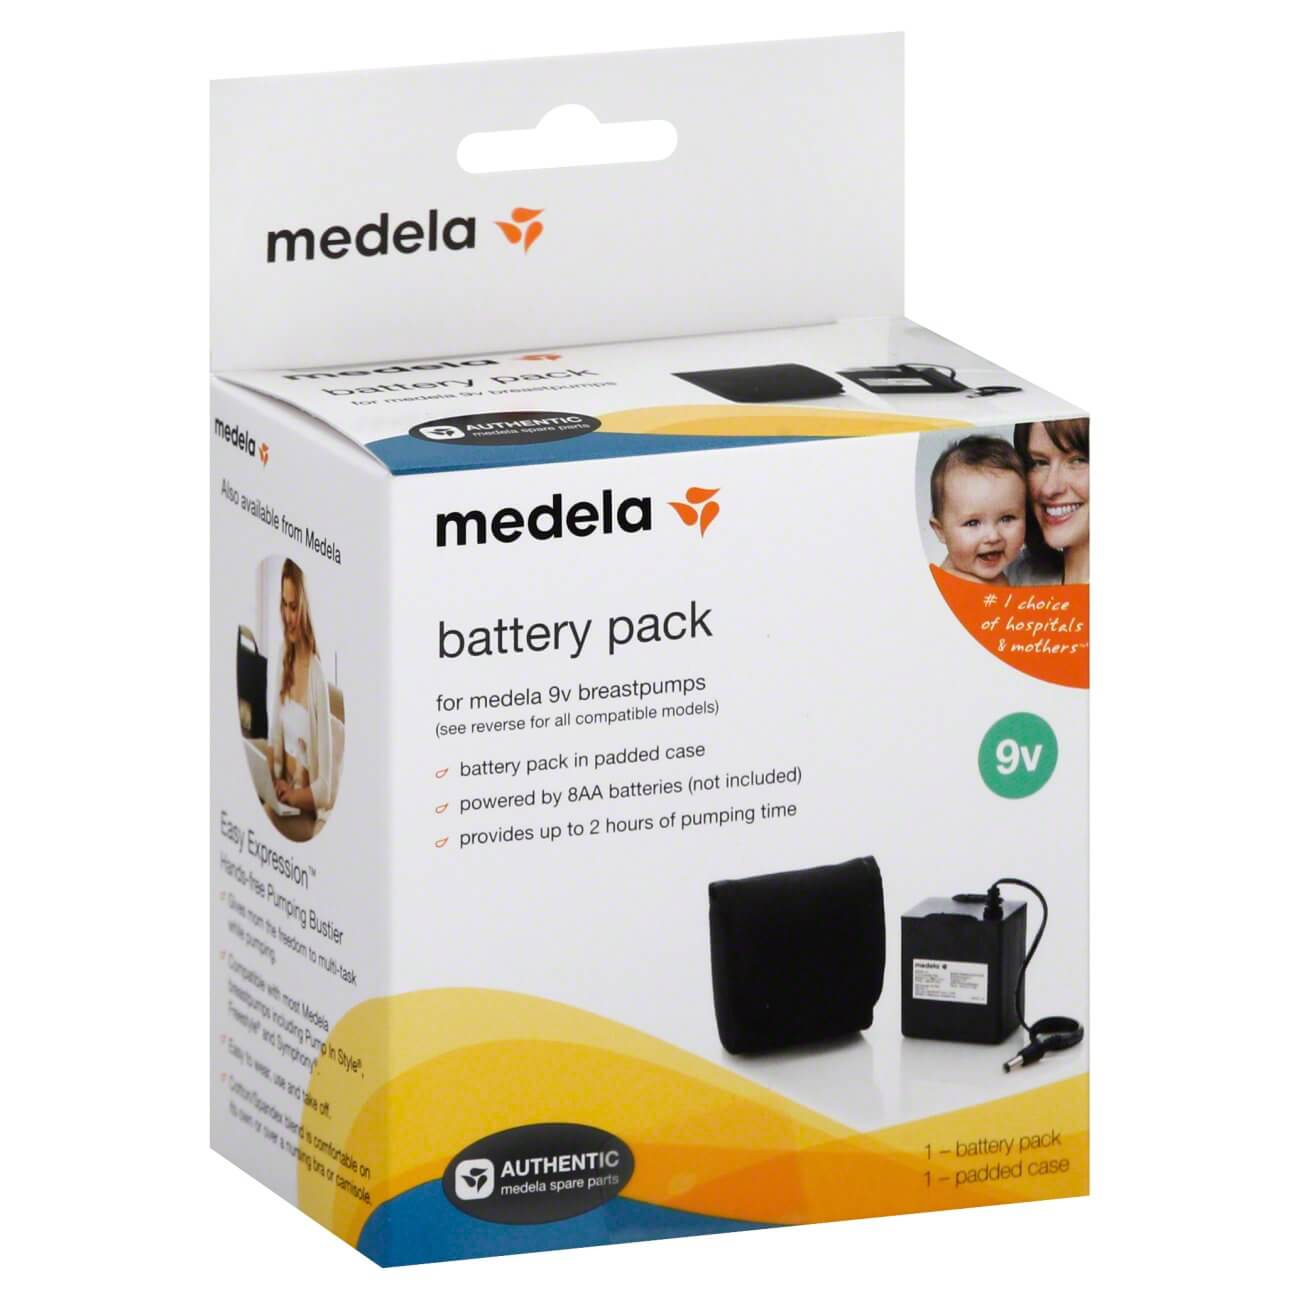 Medela Pump In Style Battery Pack